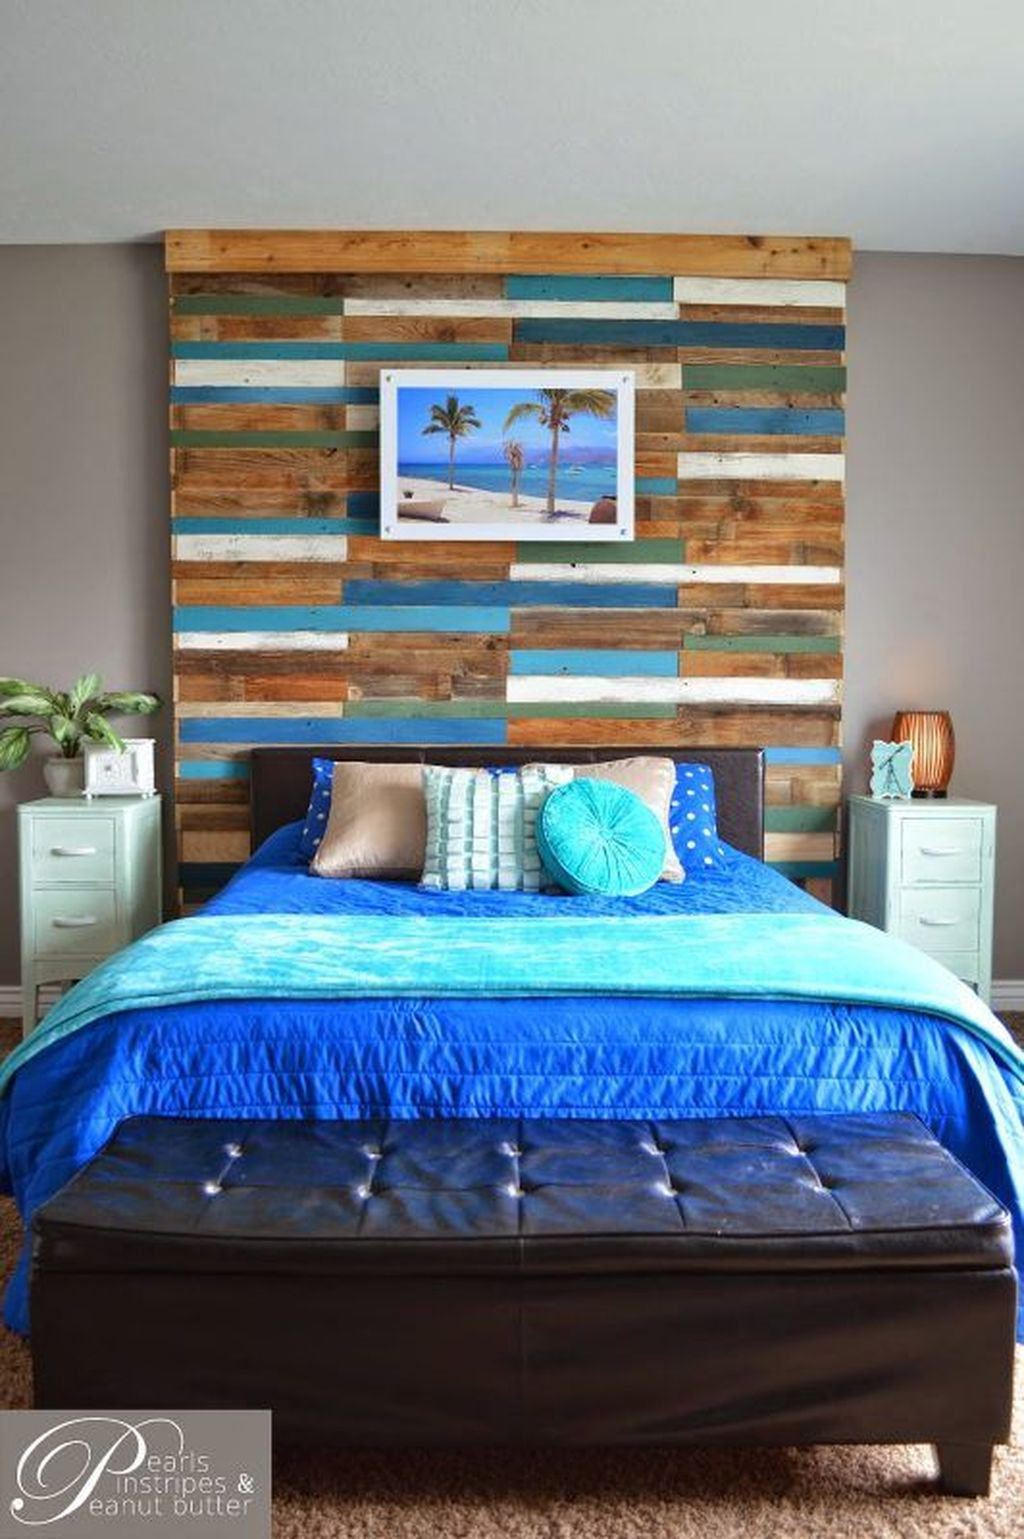 Amazing Diy Headboard Ideas Projects43